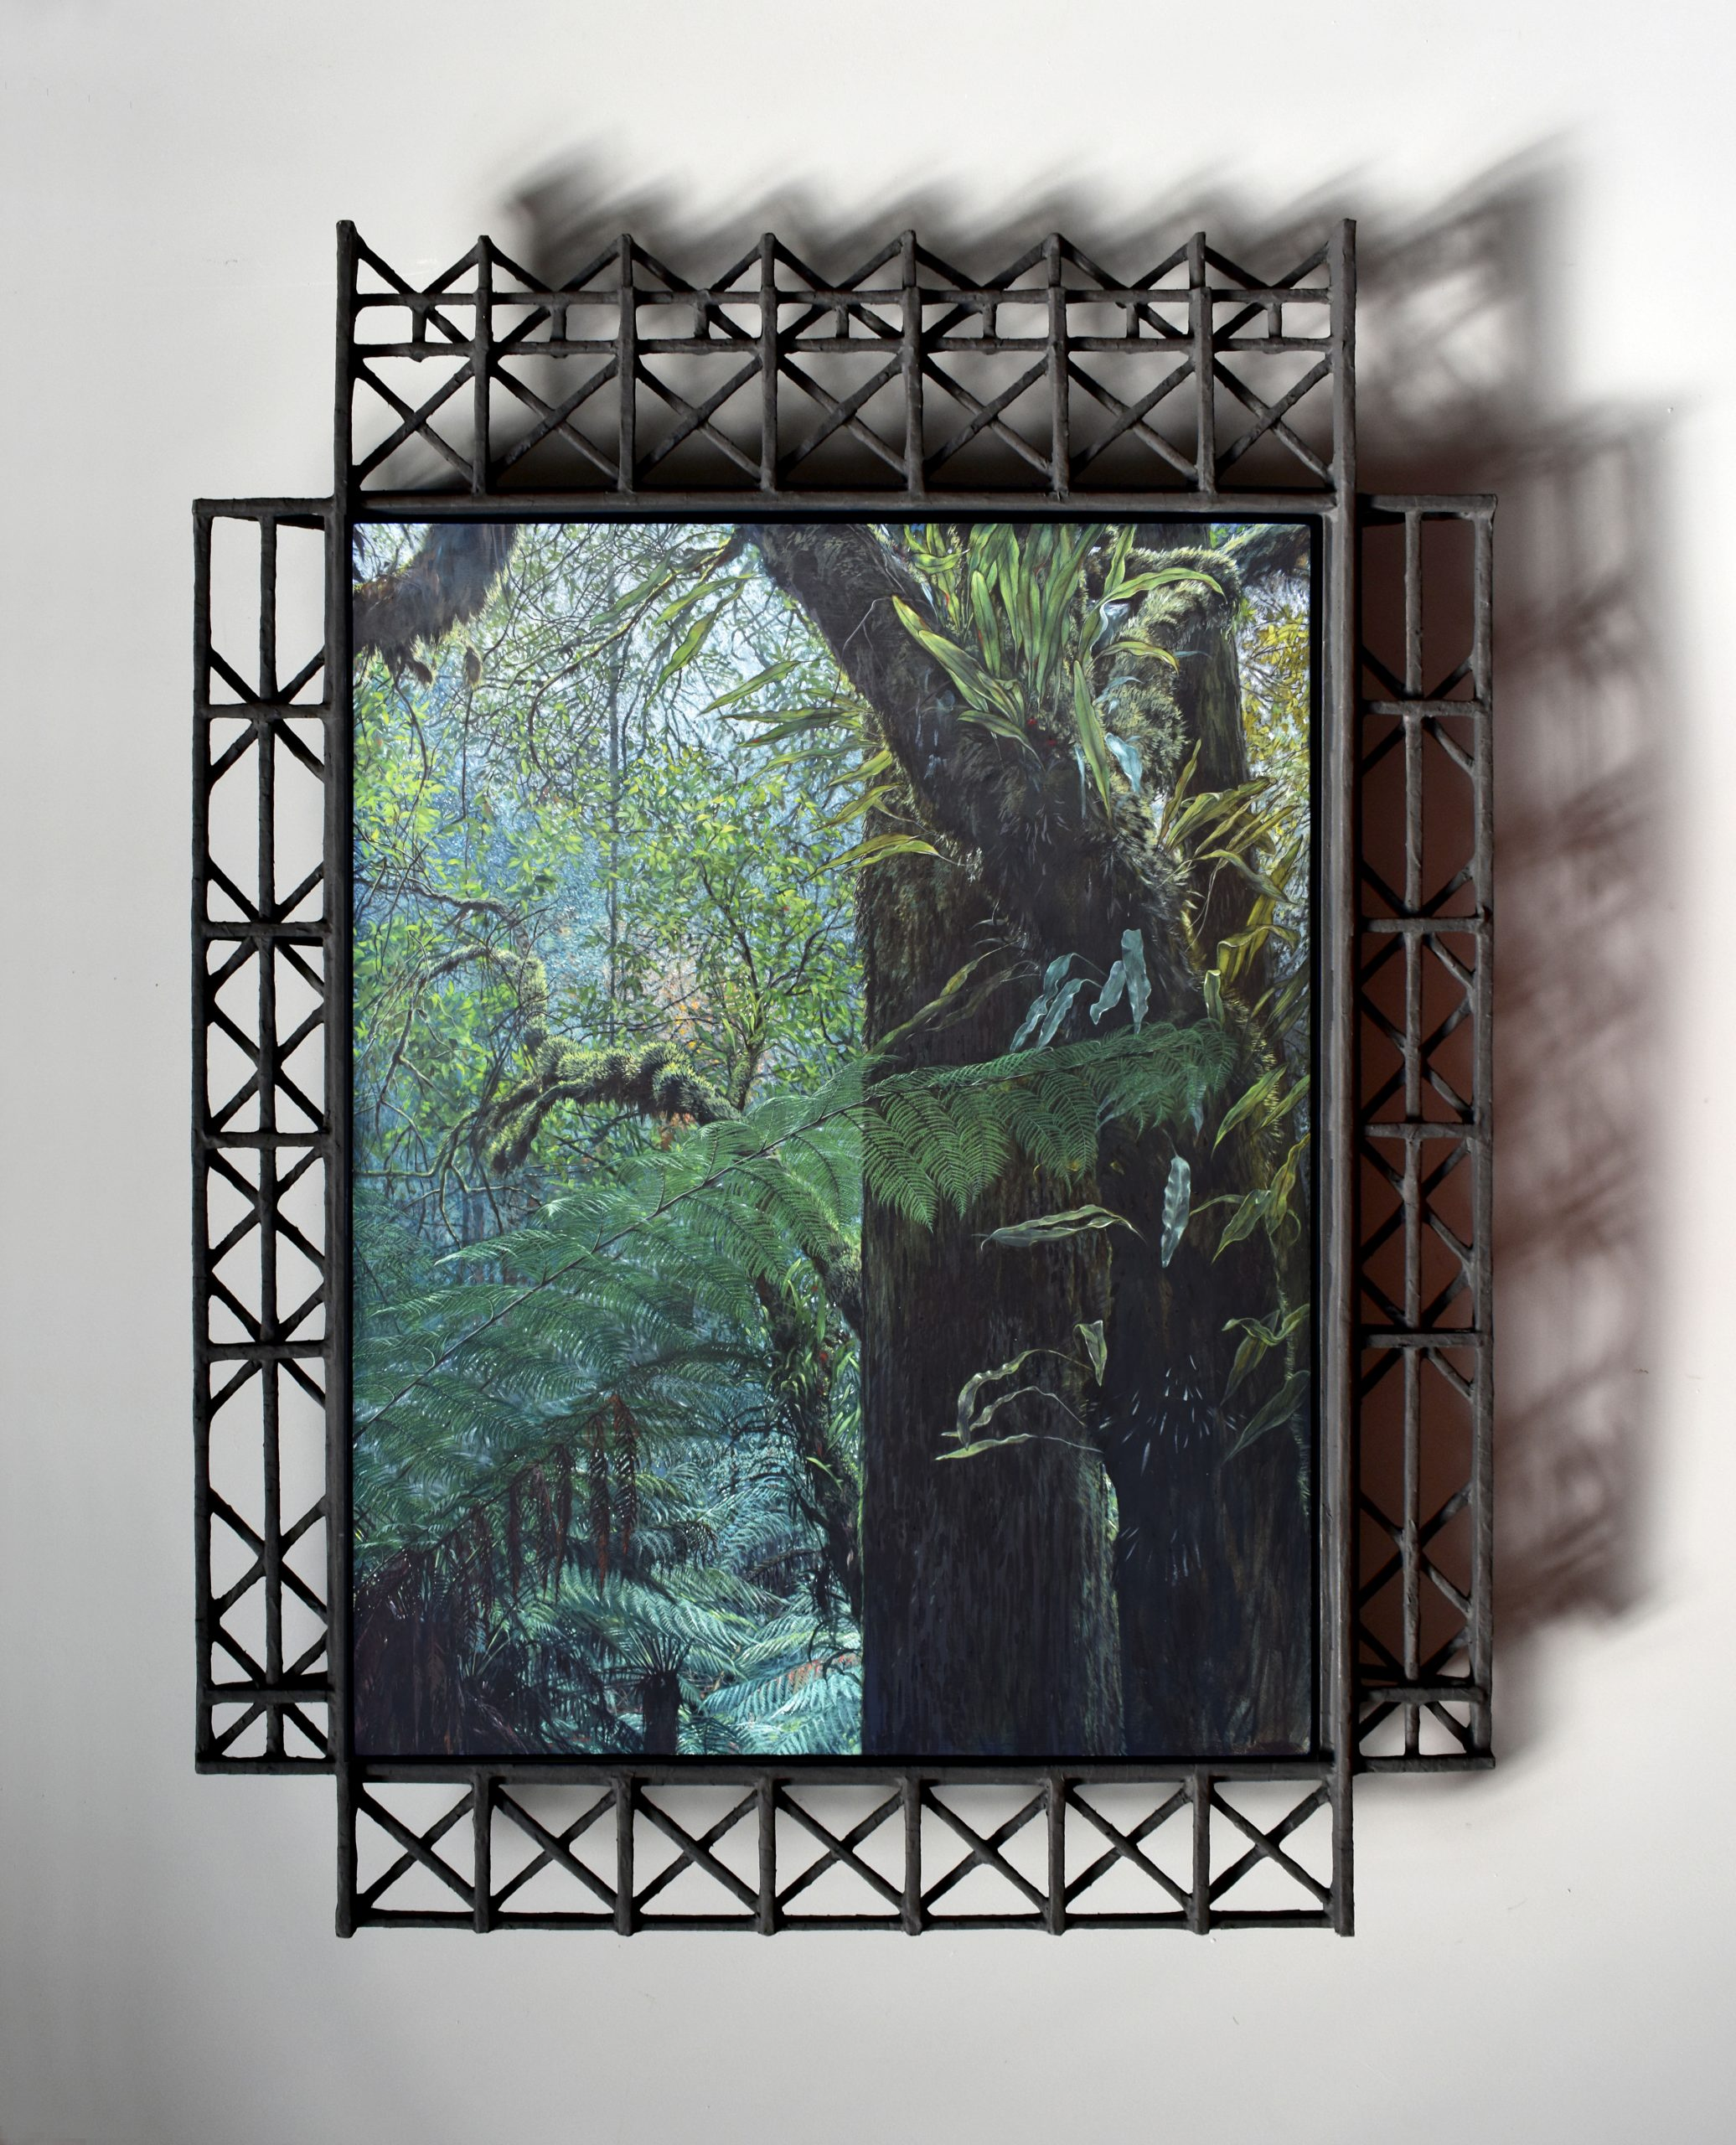 WC14 - Evercreech Epiphytes, 2020 | Oil painting on board with papier-mâché and timber frame | 850 x 640mm